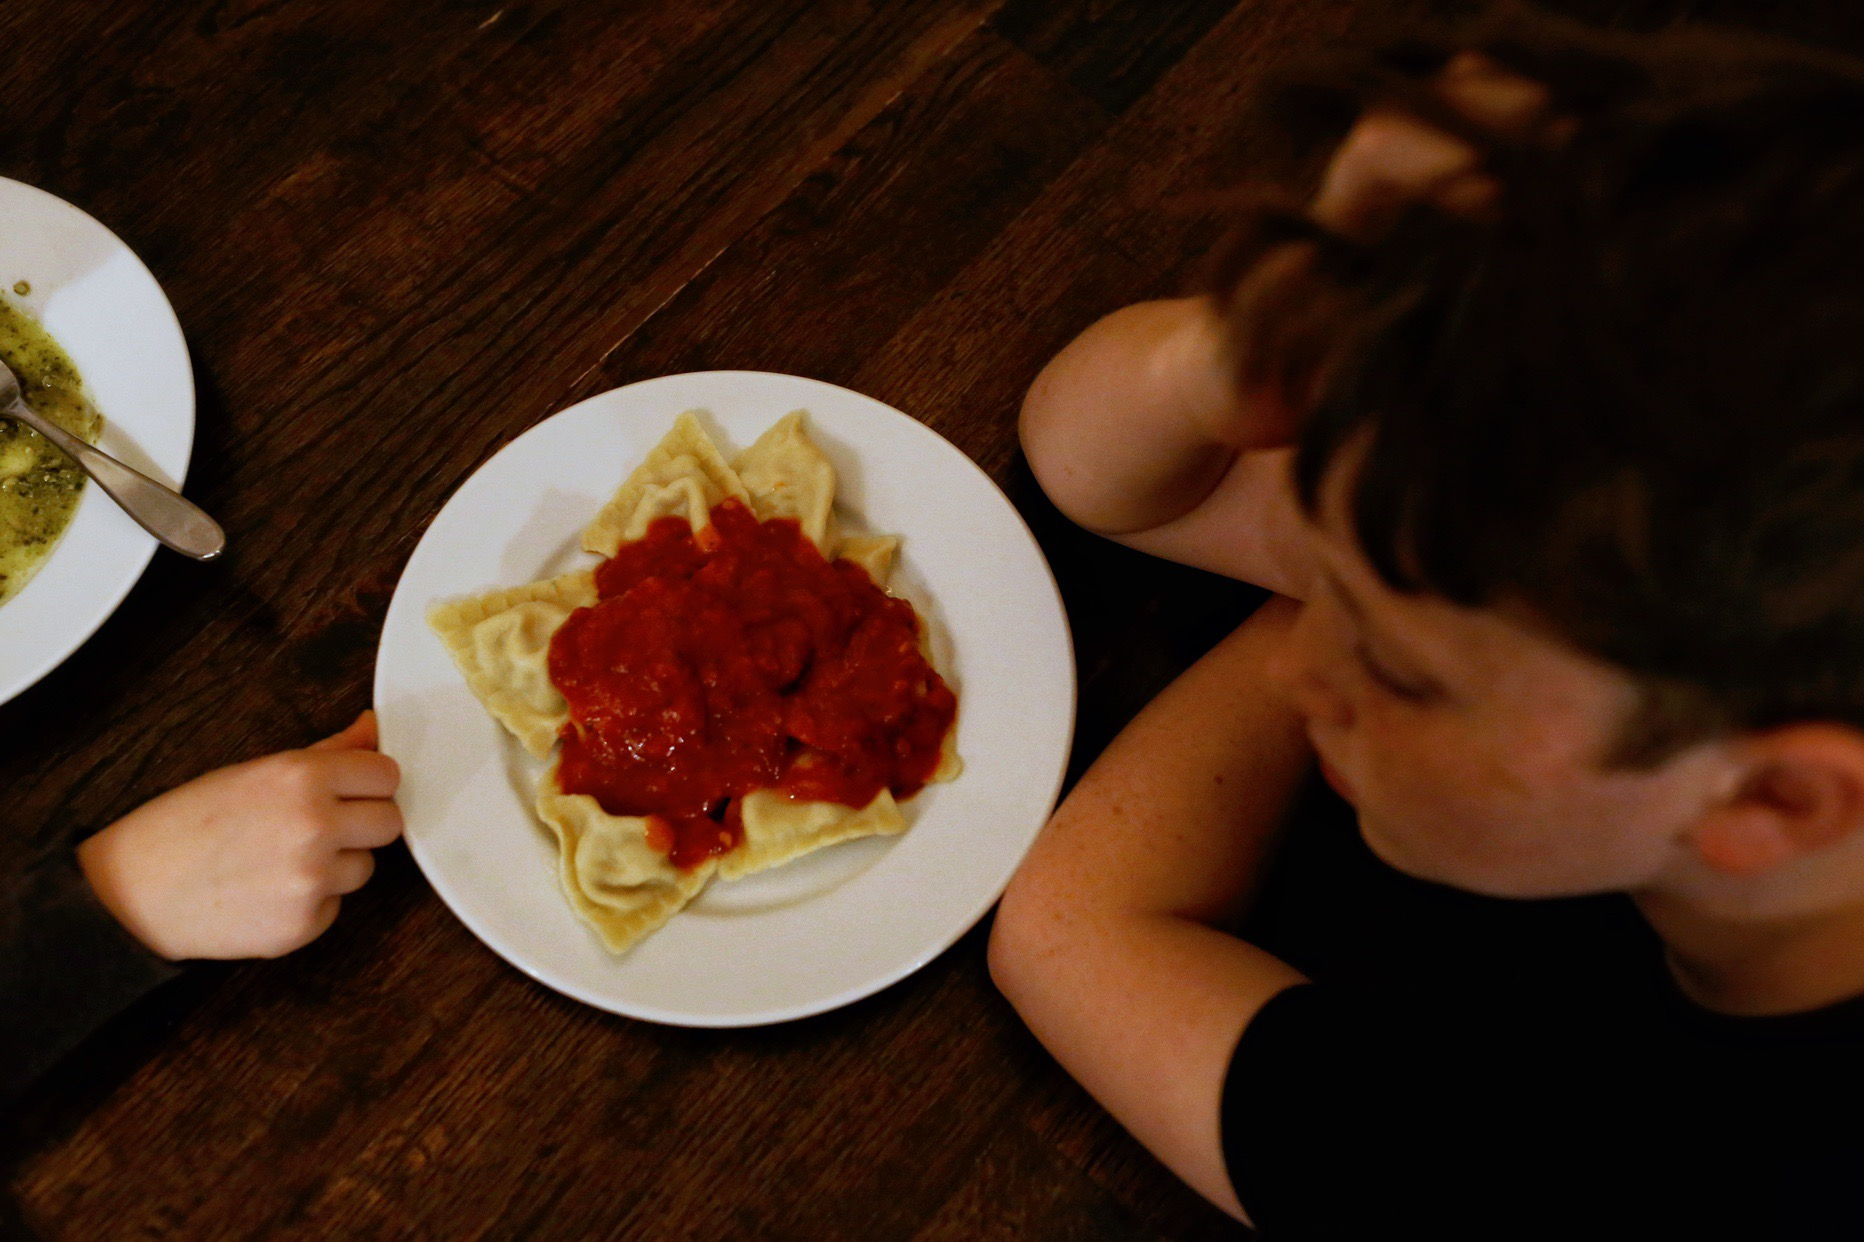 Three Bridges pasta & sauce as a fast, good dinner option for families feeding tweens. | JillKrause.com